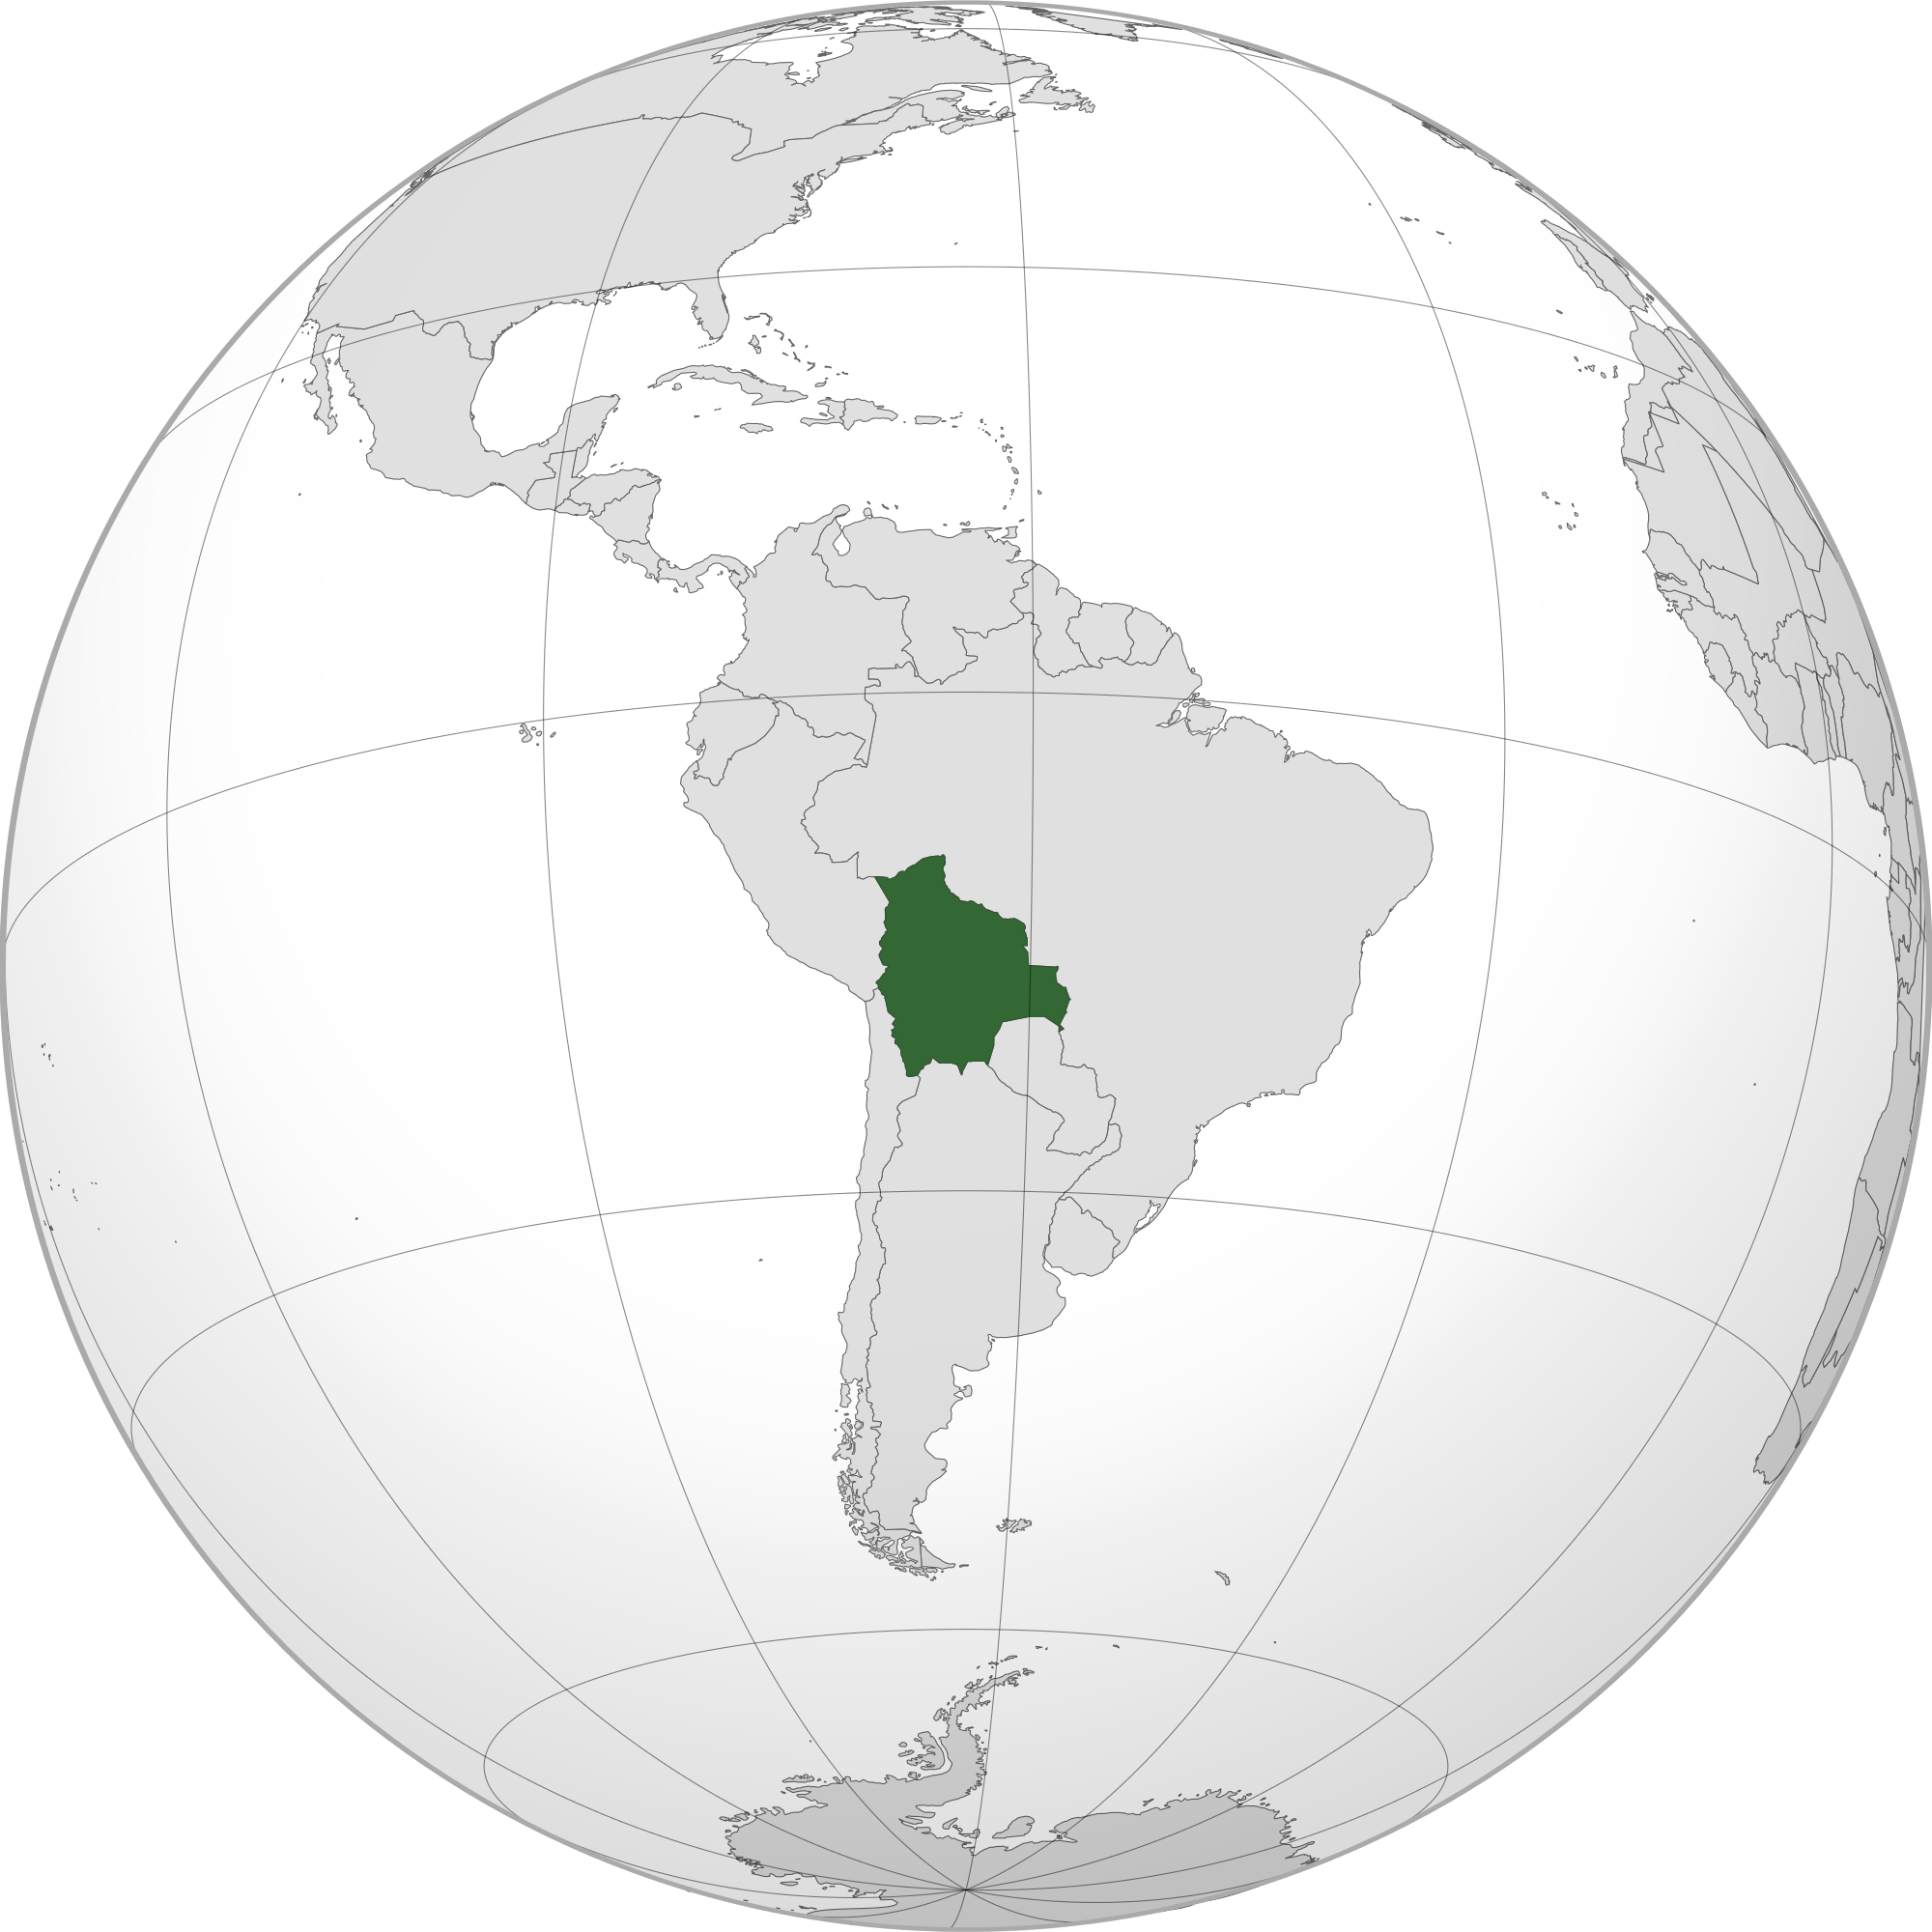 Location of the bolivia in the World Map